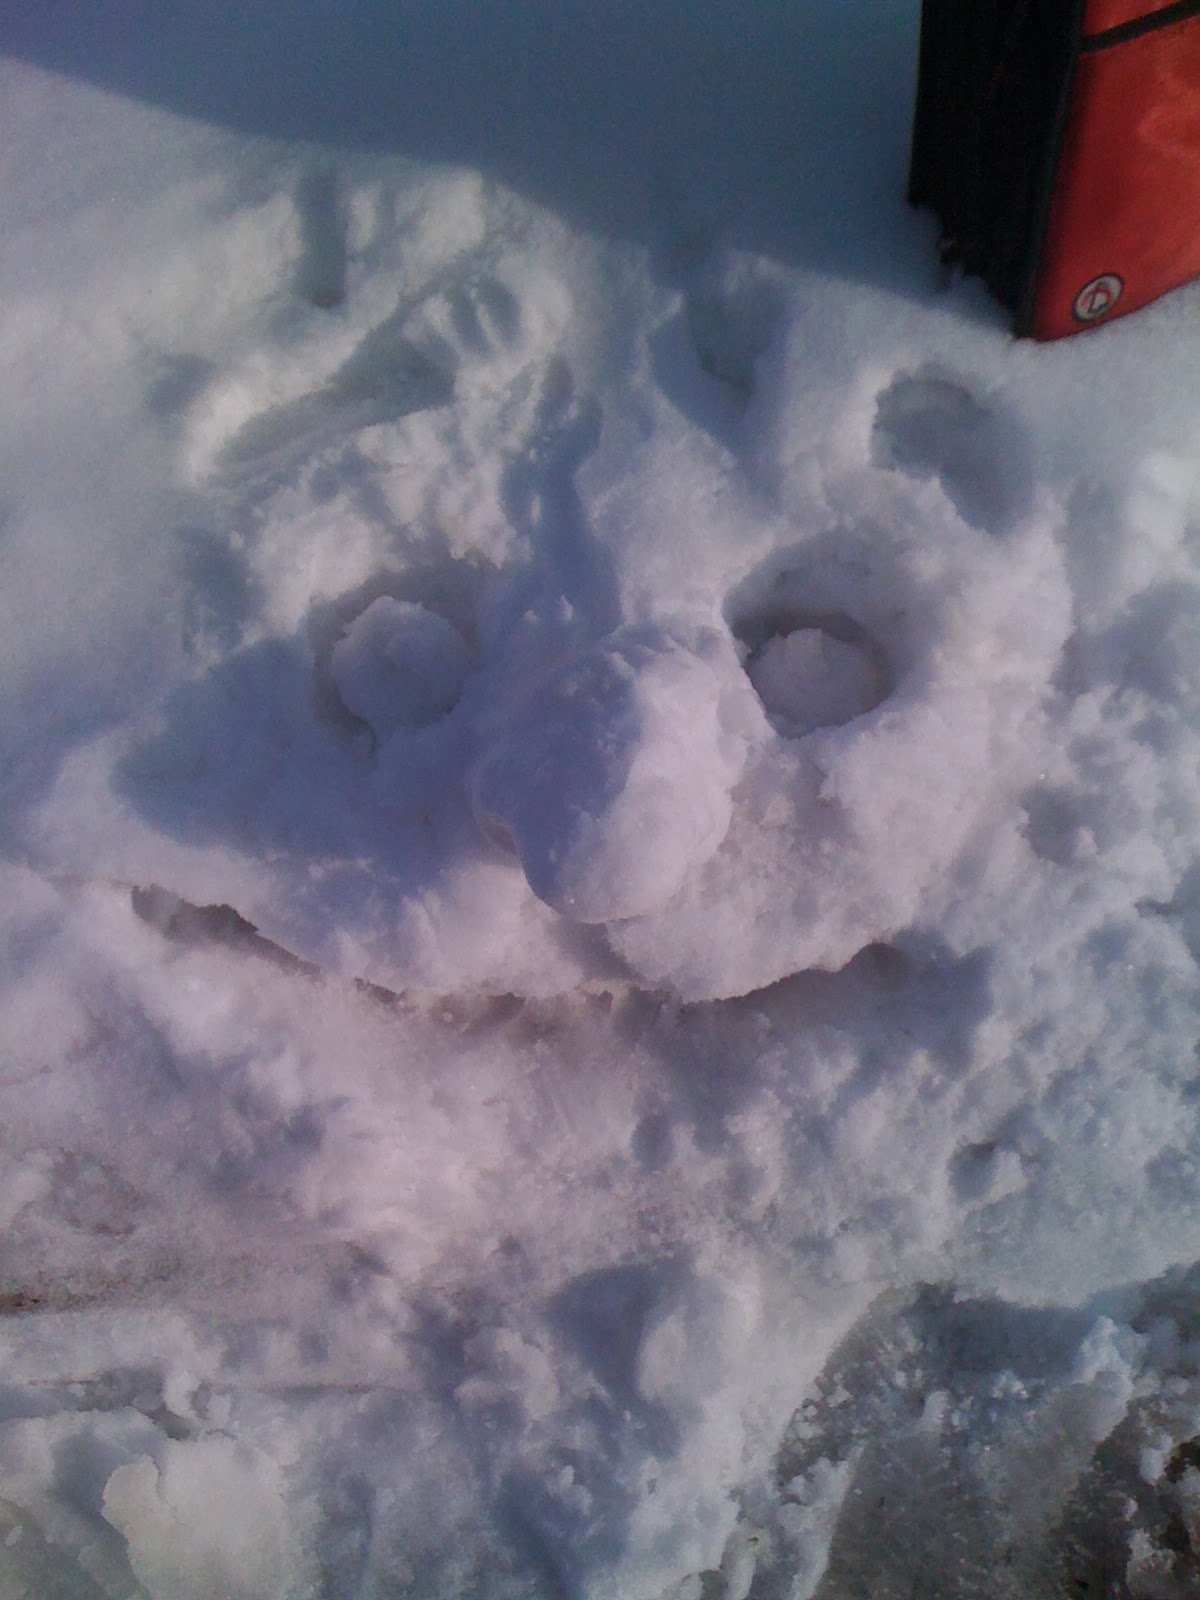 Snow man face